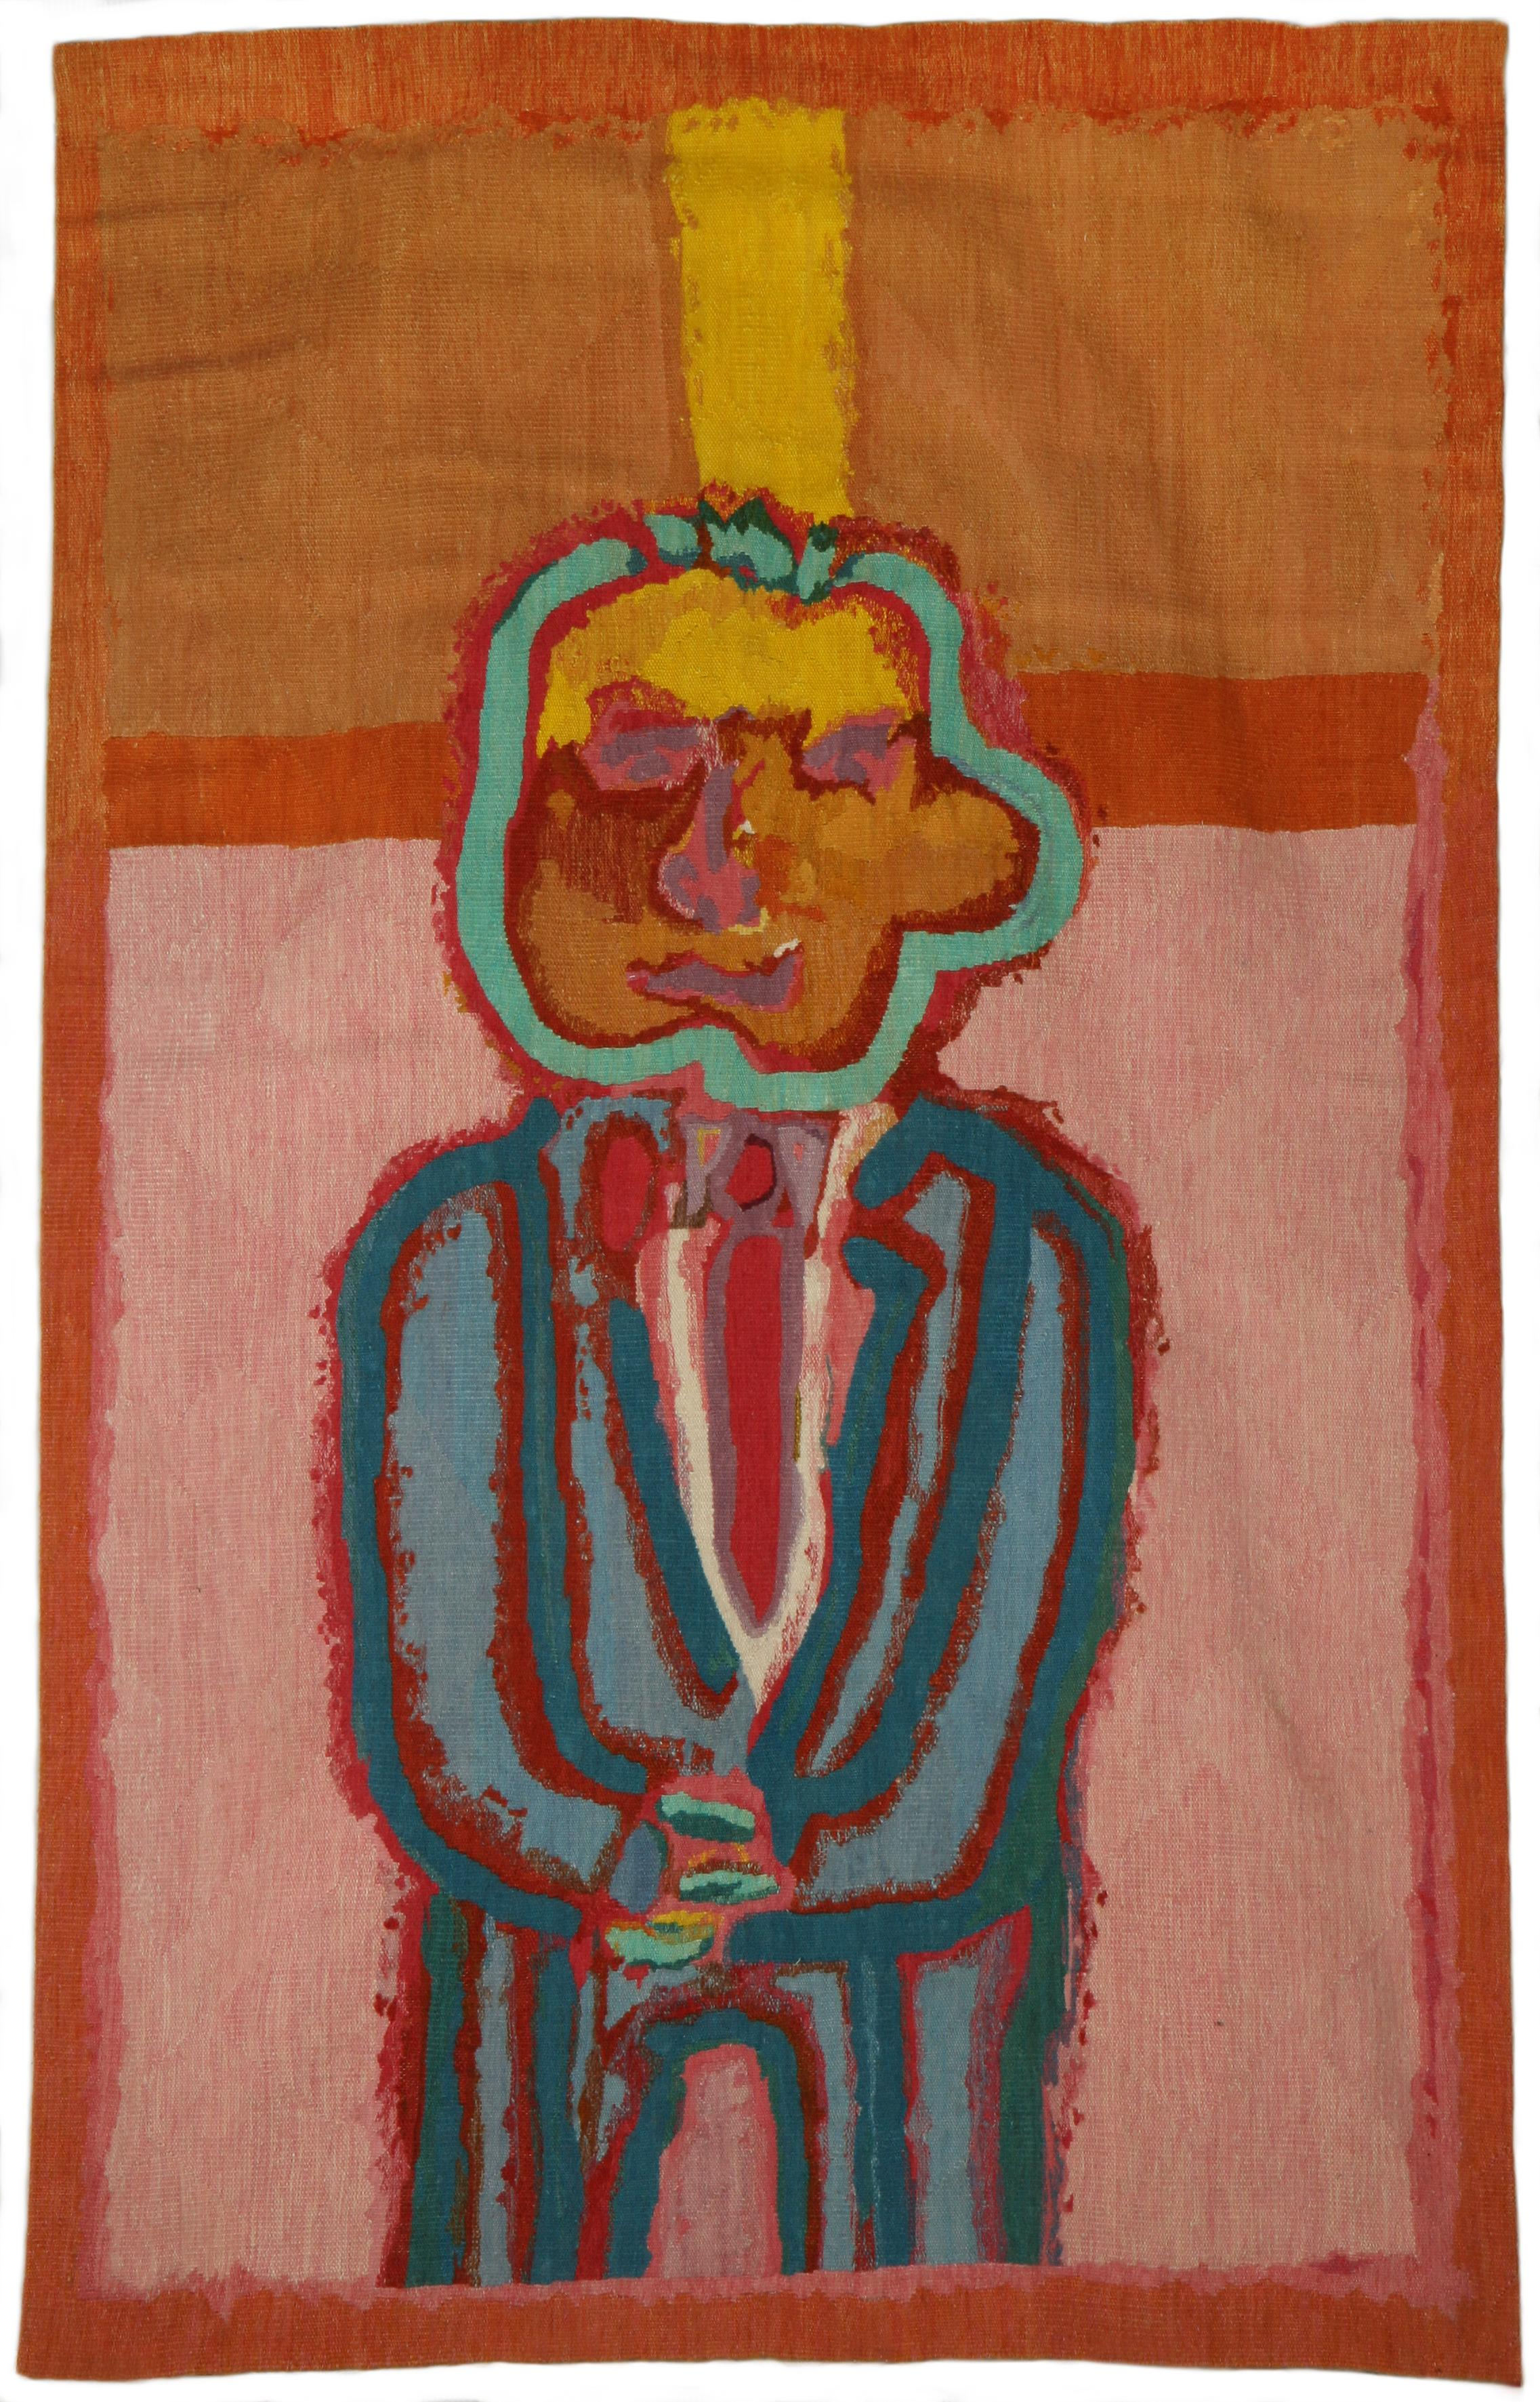 Robert Hodgins (South Africa 1920-2010) and The Margaurite Stephens Tapestry Studio (South Africa) Blue Suit Guy, 2018/19